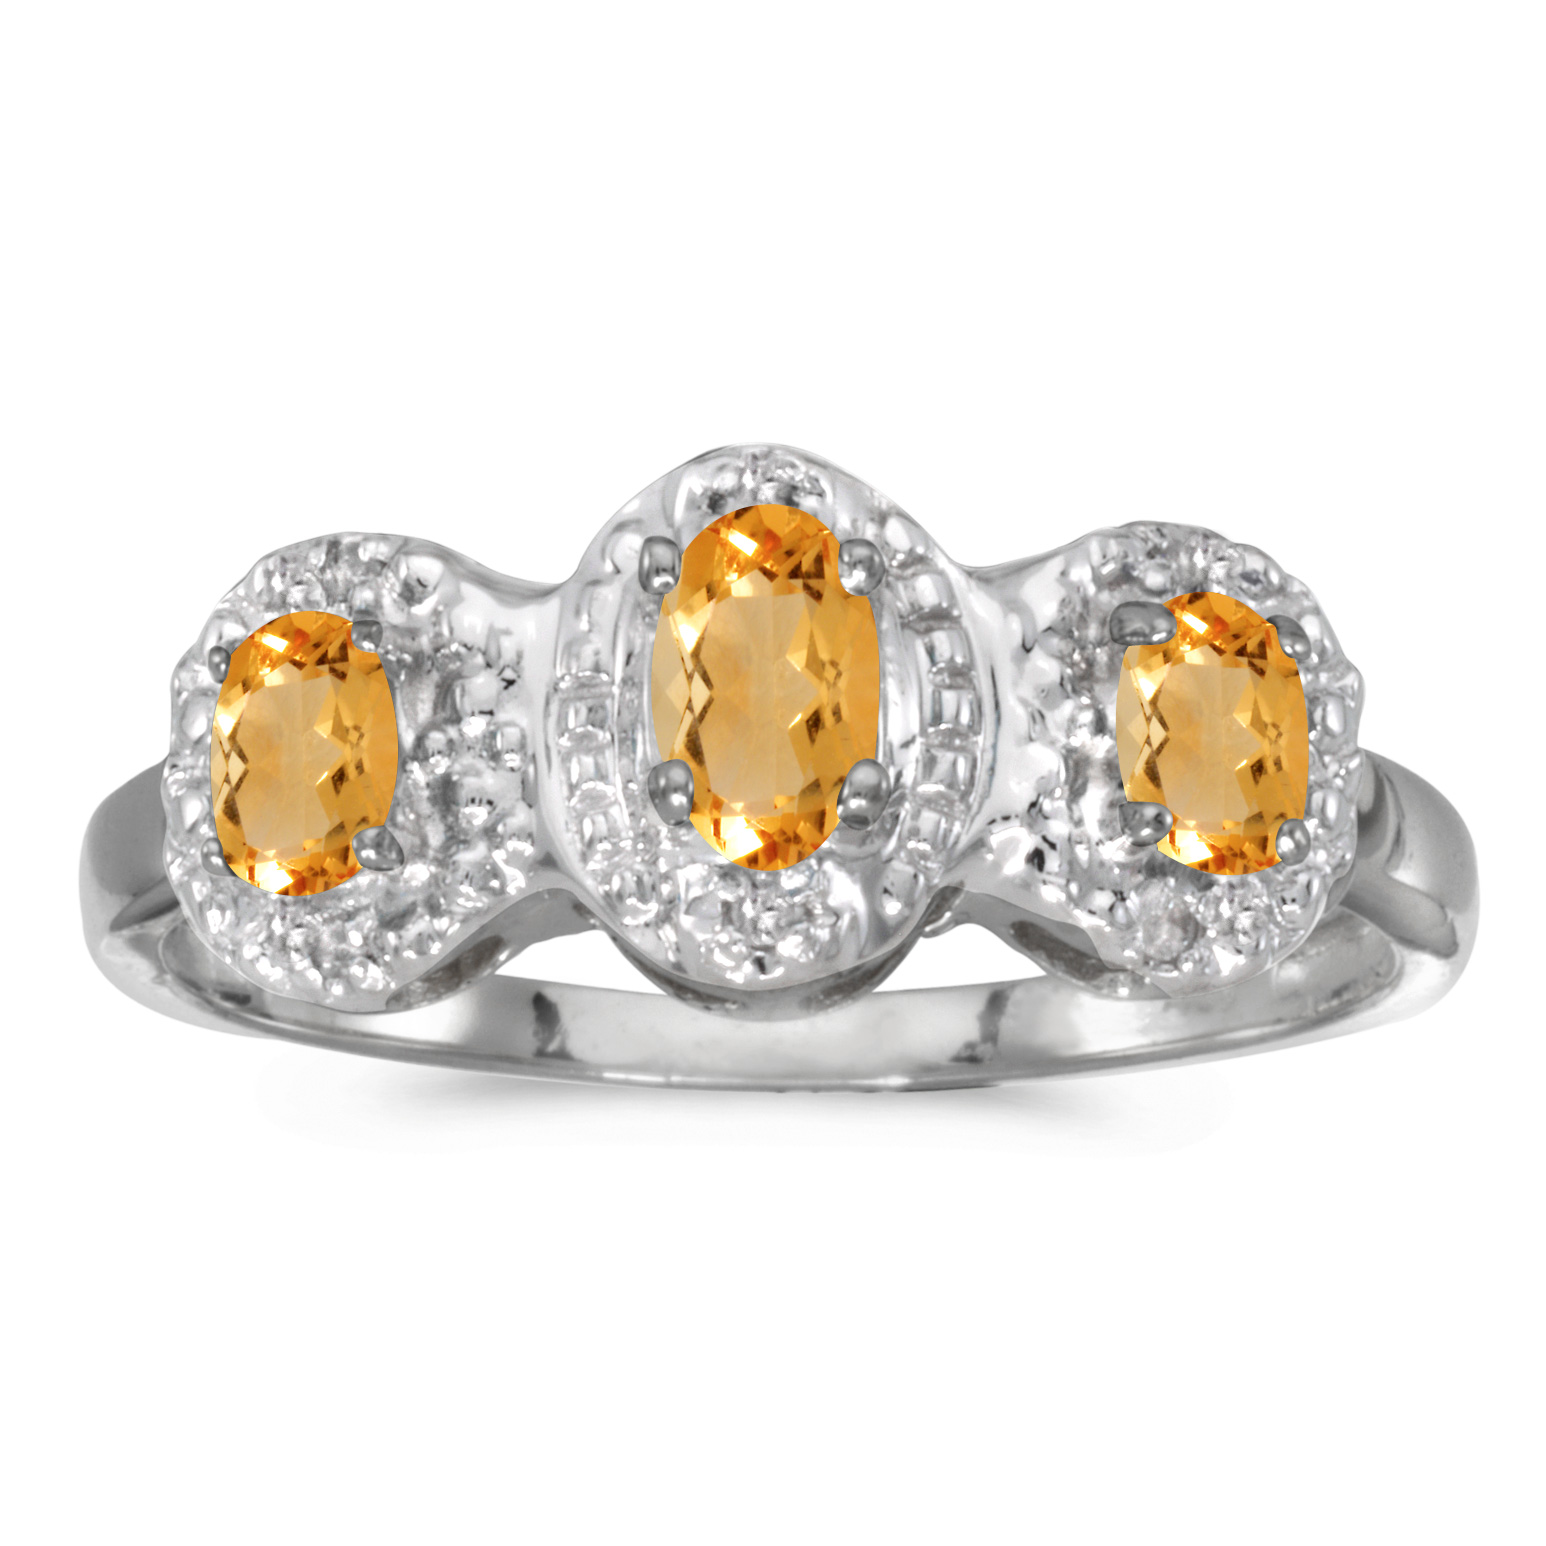 Direct-Jewelry 14k White Gold Oval Citrine And Diamond Three Stone Ring